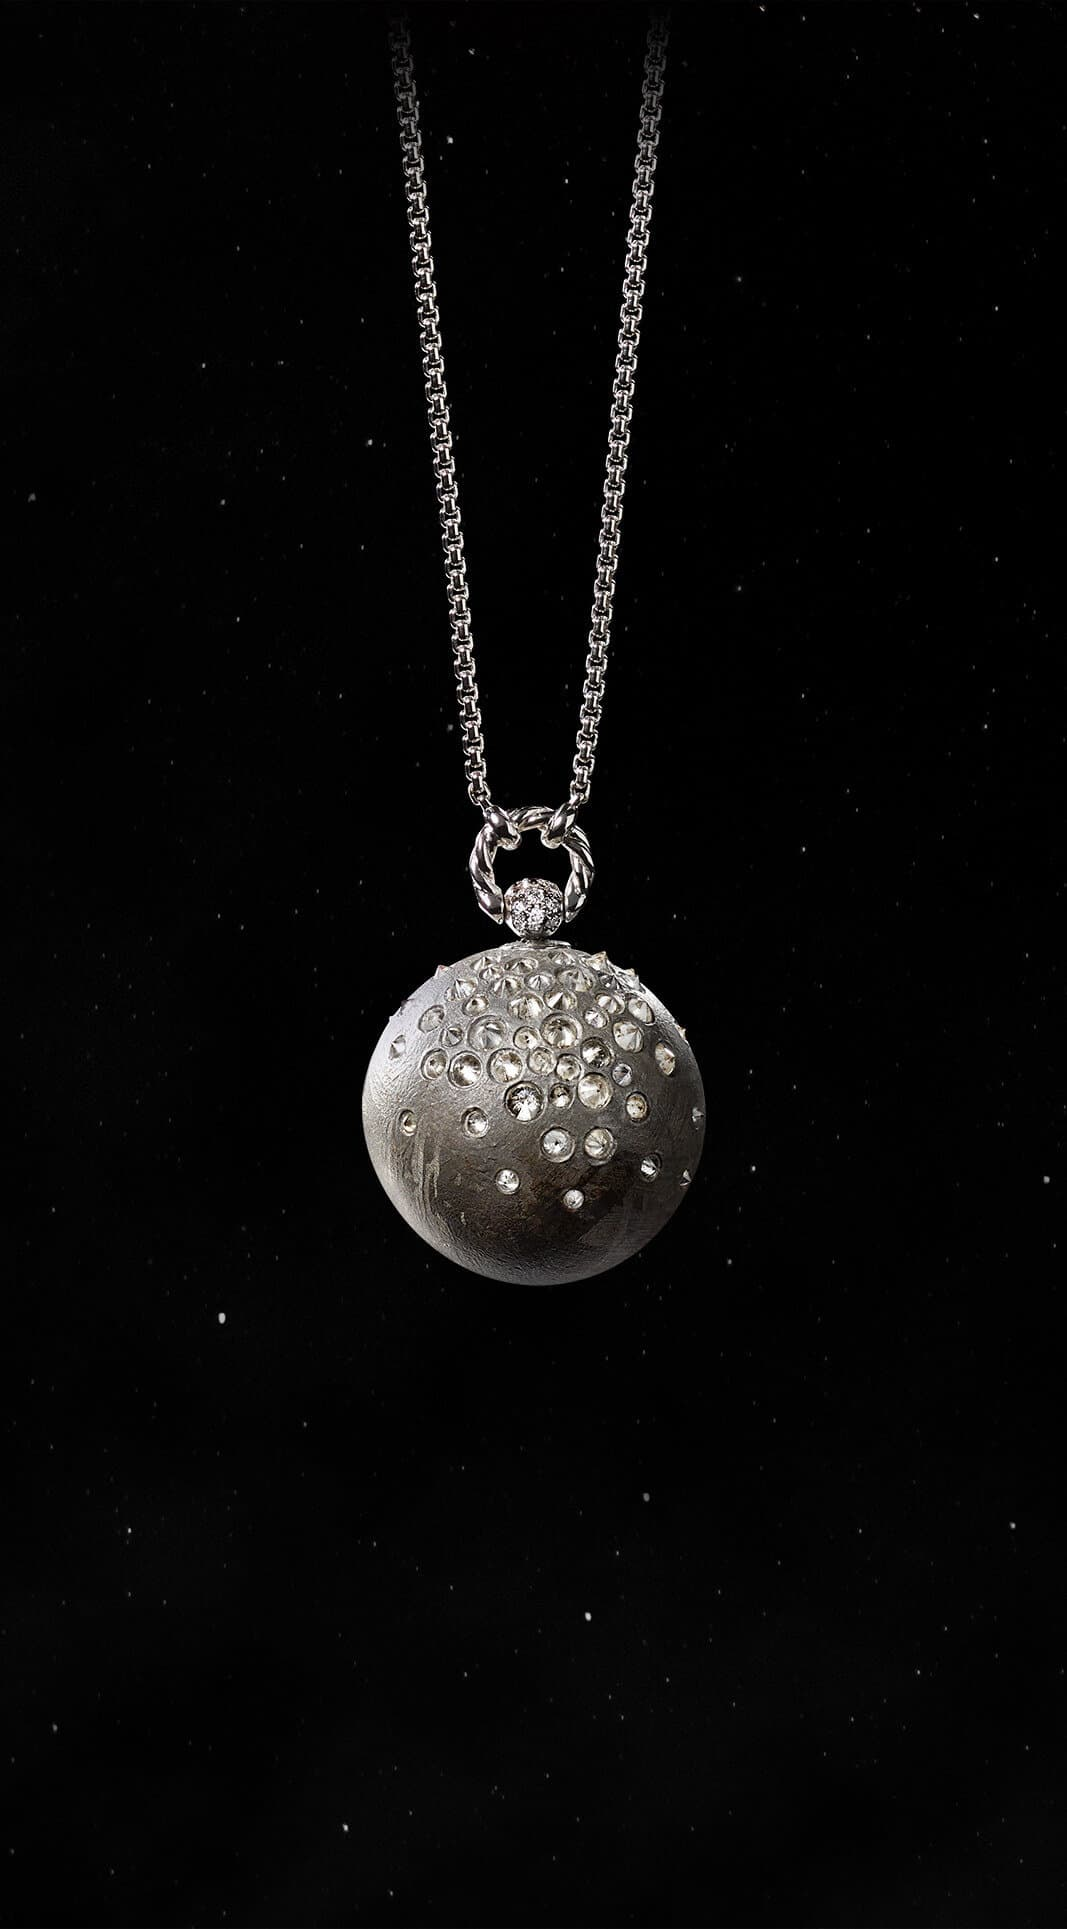 A color photo shows the David Yurman Solari Planet Mercury pendant necklace in front of a starry night sky. The pendant is crafted from meteorite with 18K white gold and grey and white diamonds.